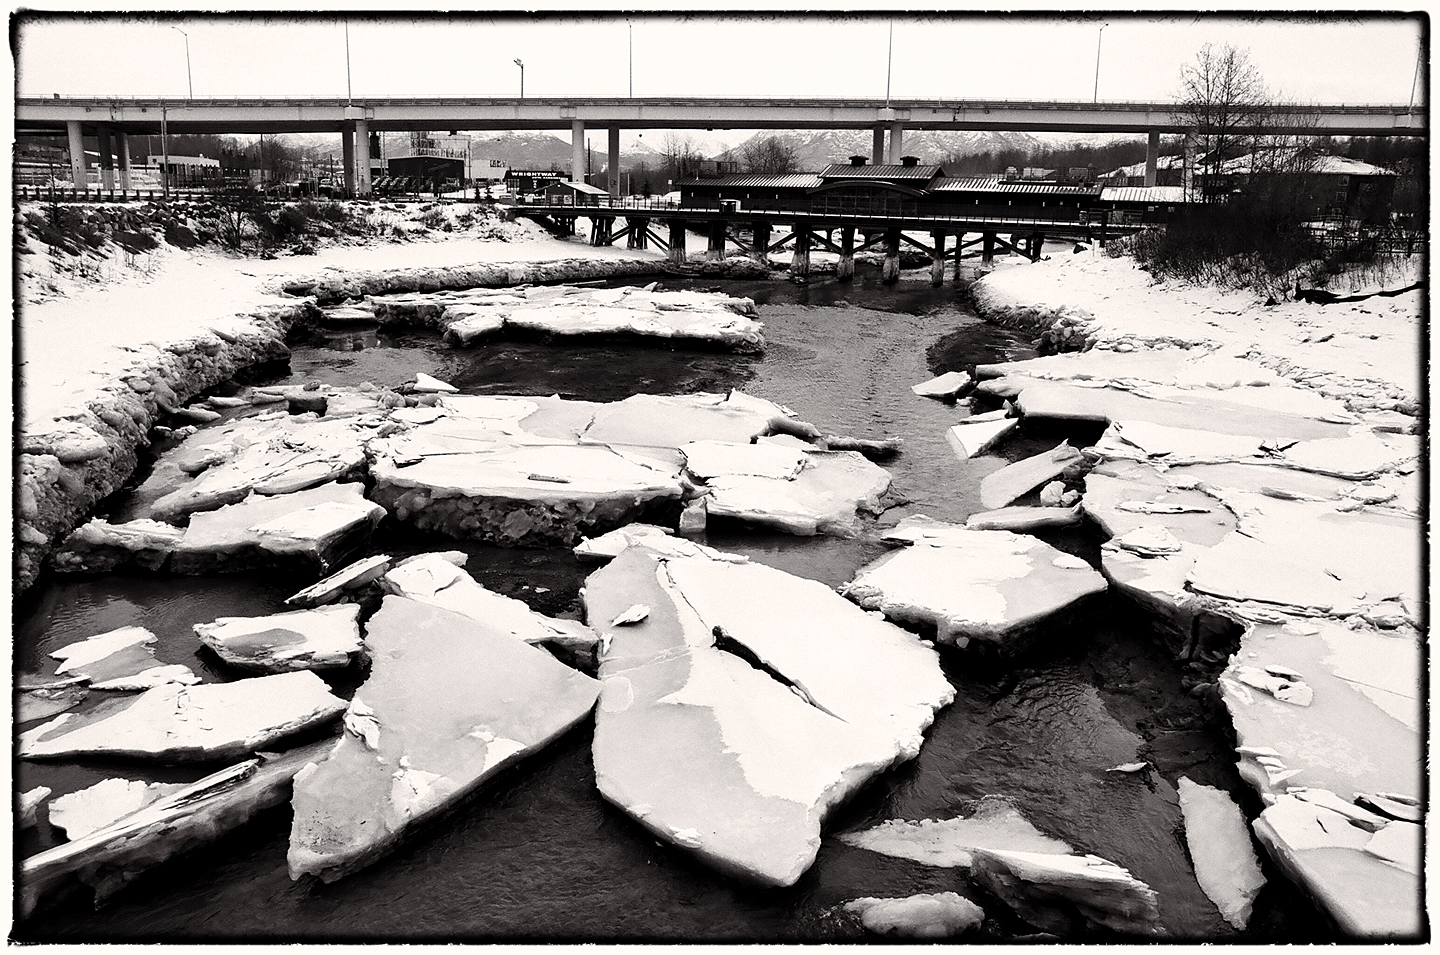 Ship Creek Ice Floes and Bridge by bensonga in bensonga